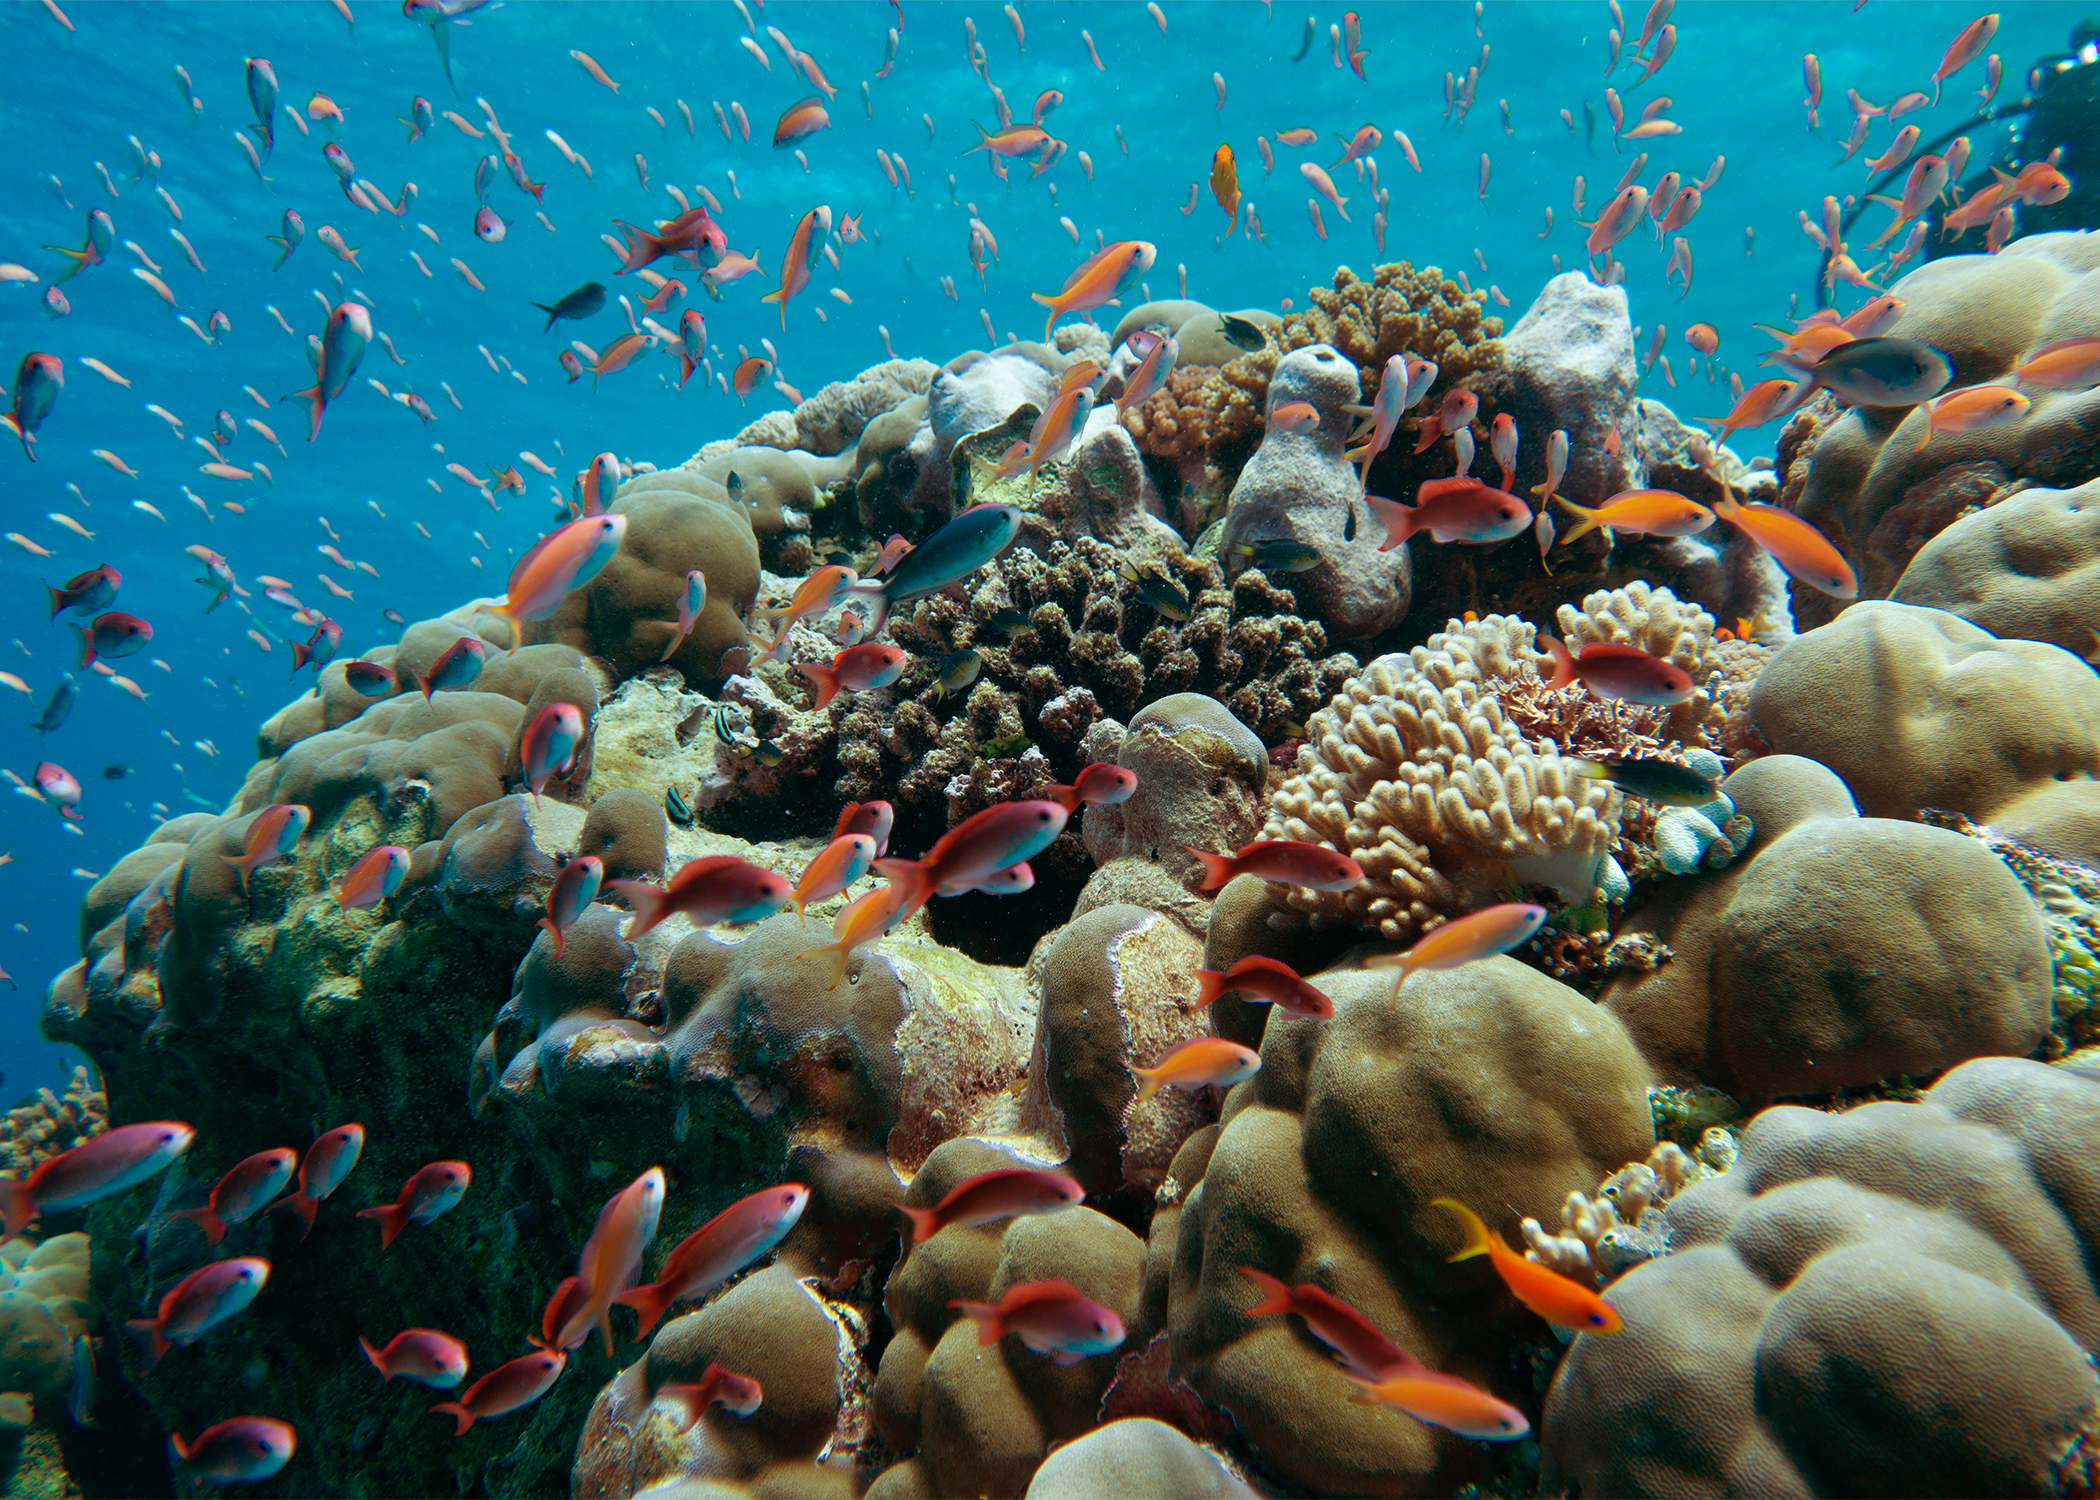 A healthy coral reef community in action